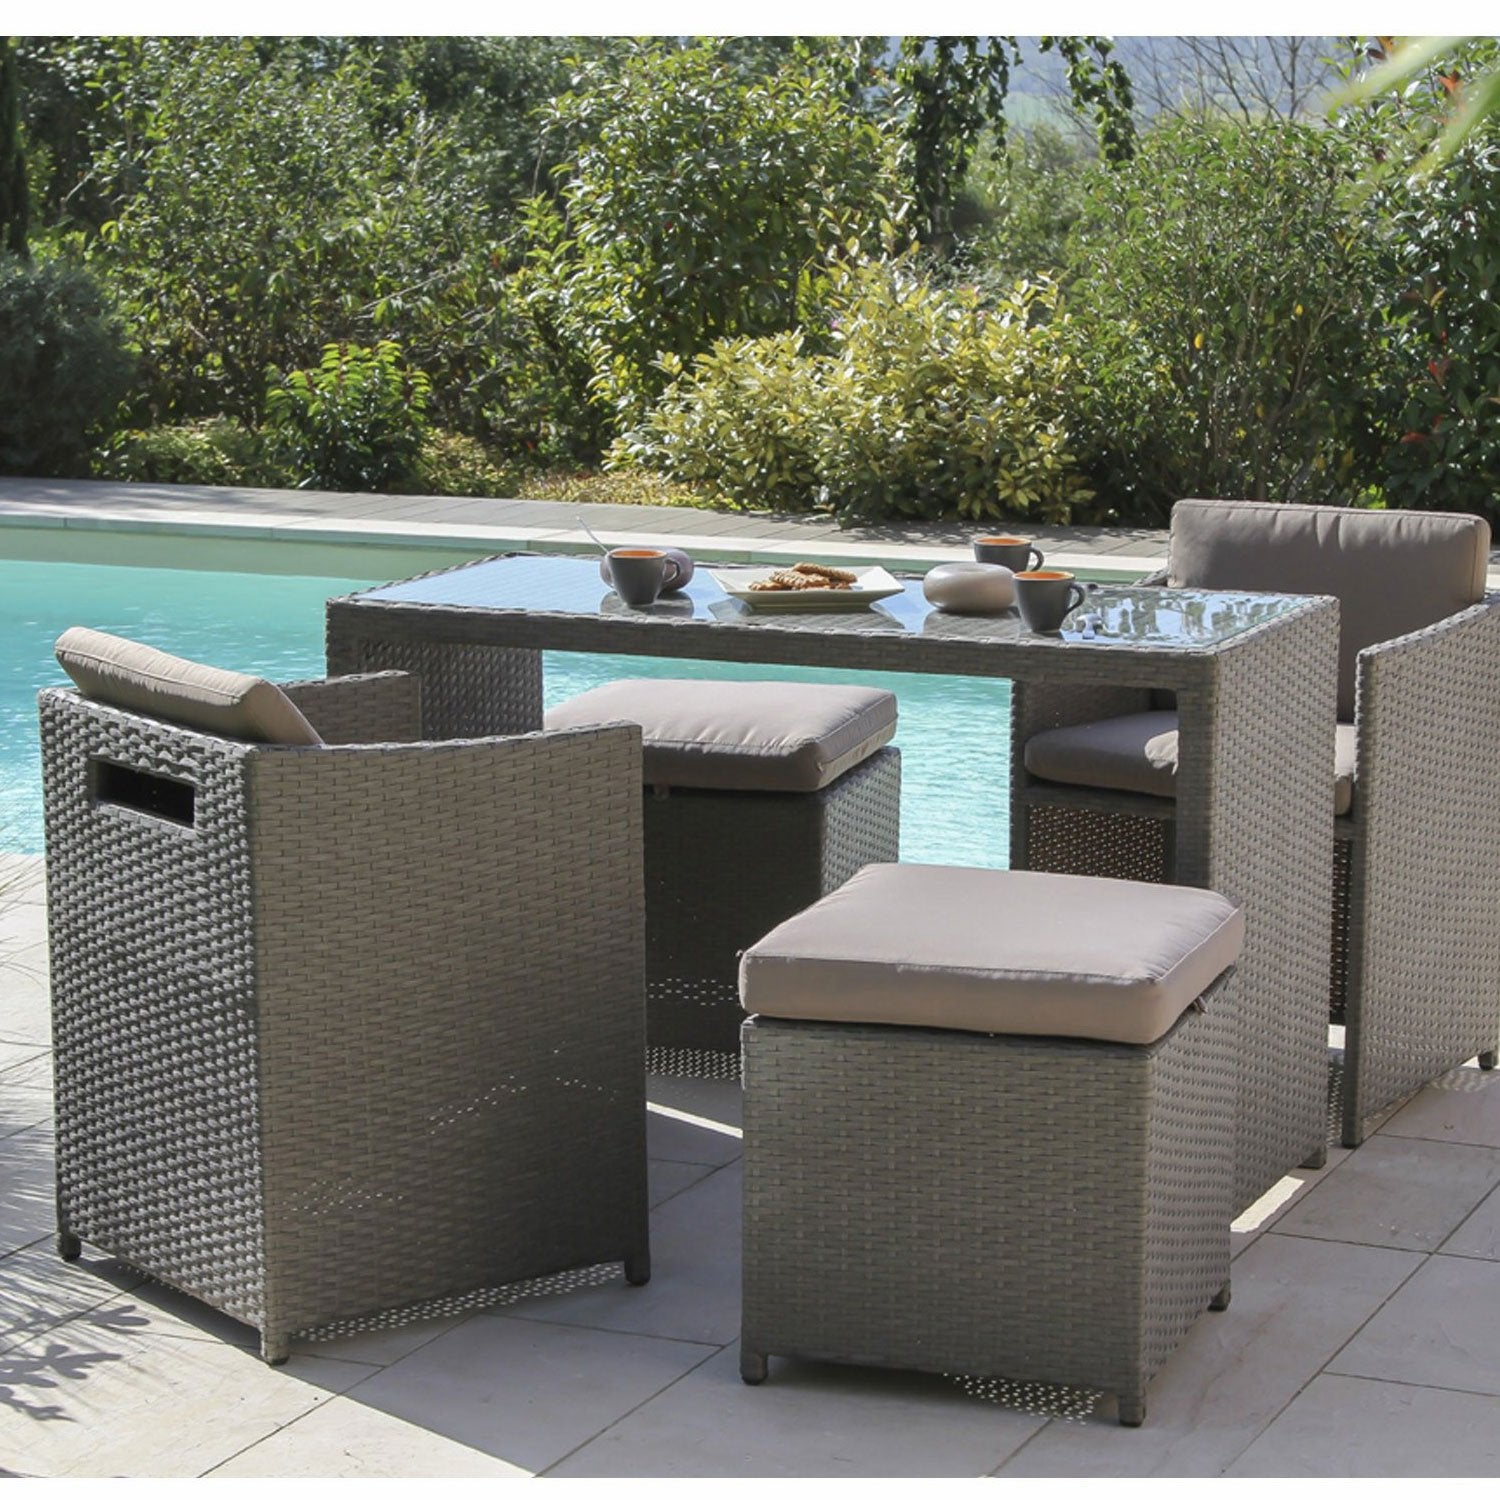 Salon de jardin foggia r sine tress e gris 1 table 2 - Salon de jardin en resine leroy merlin ...